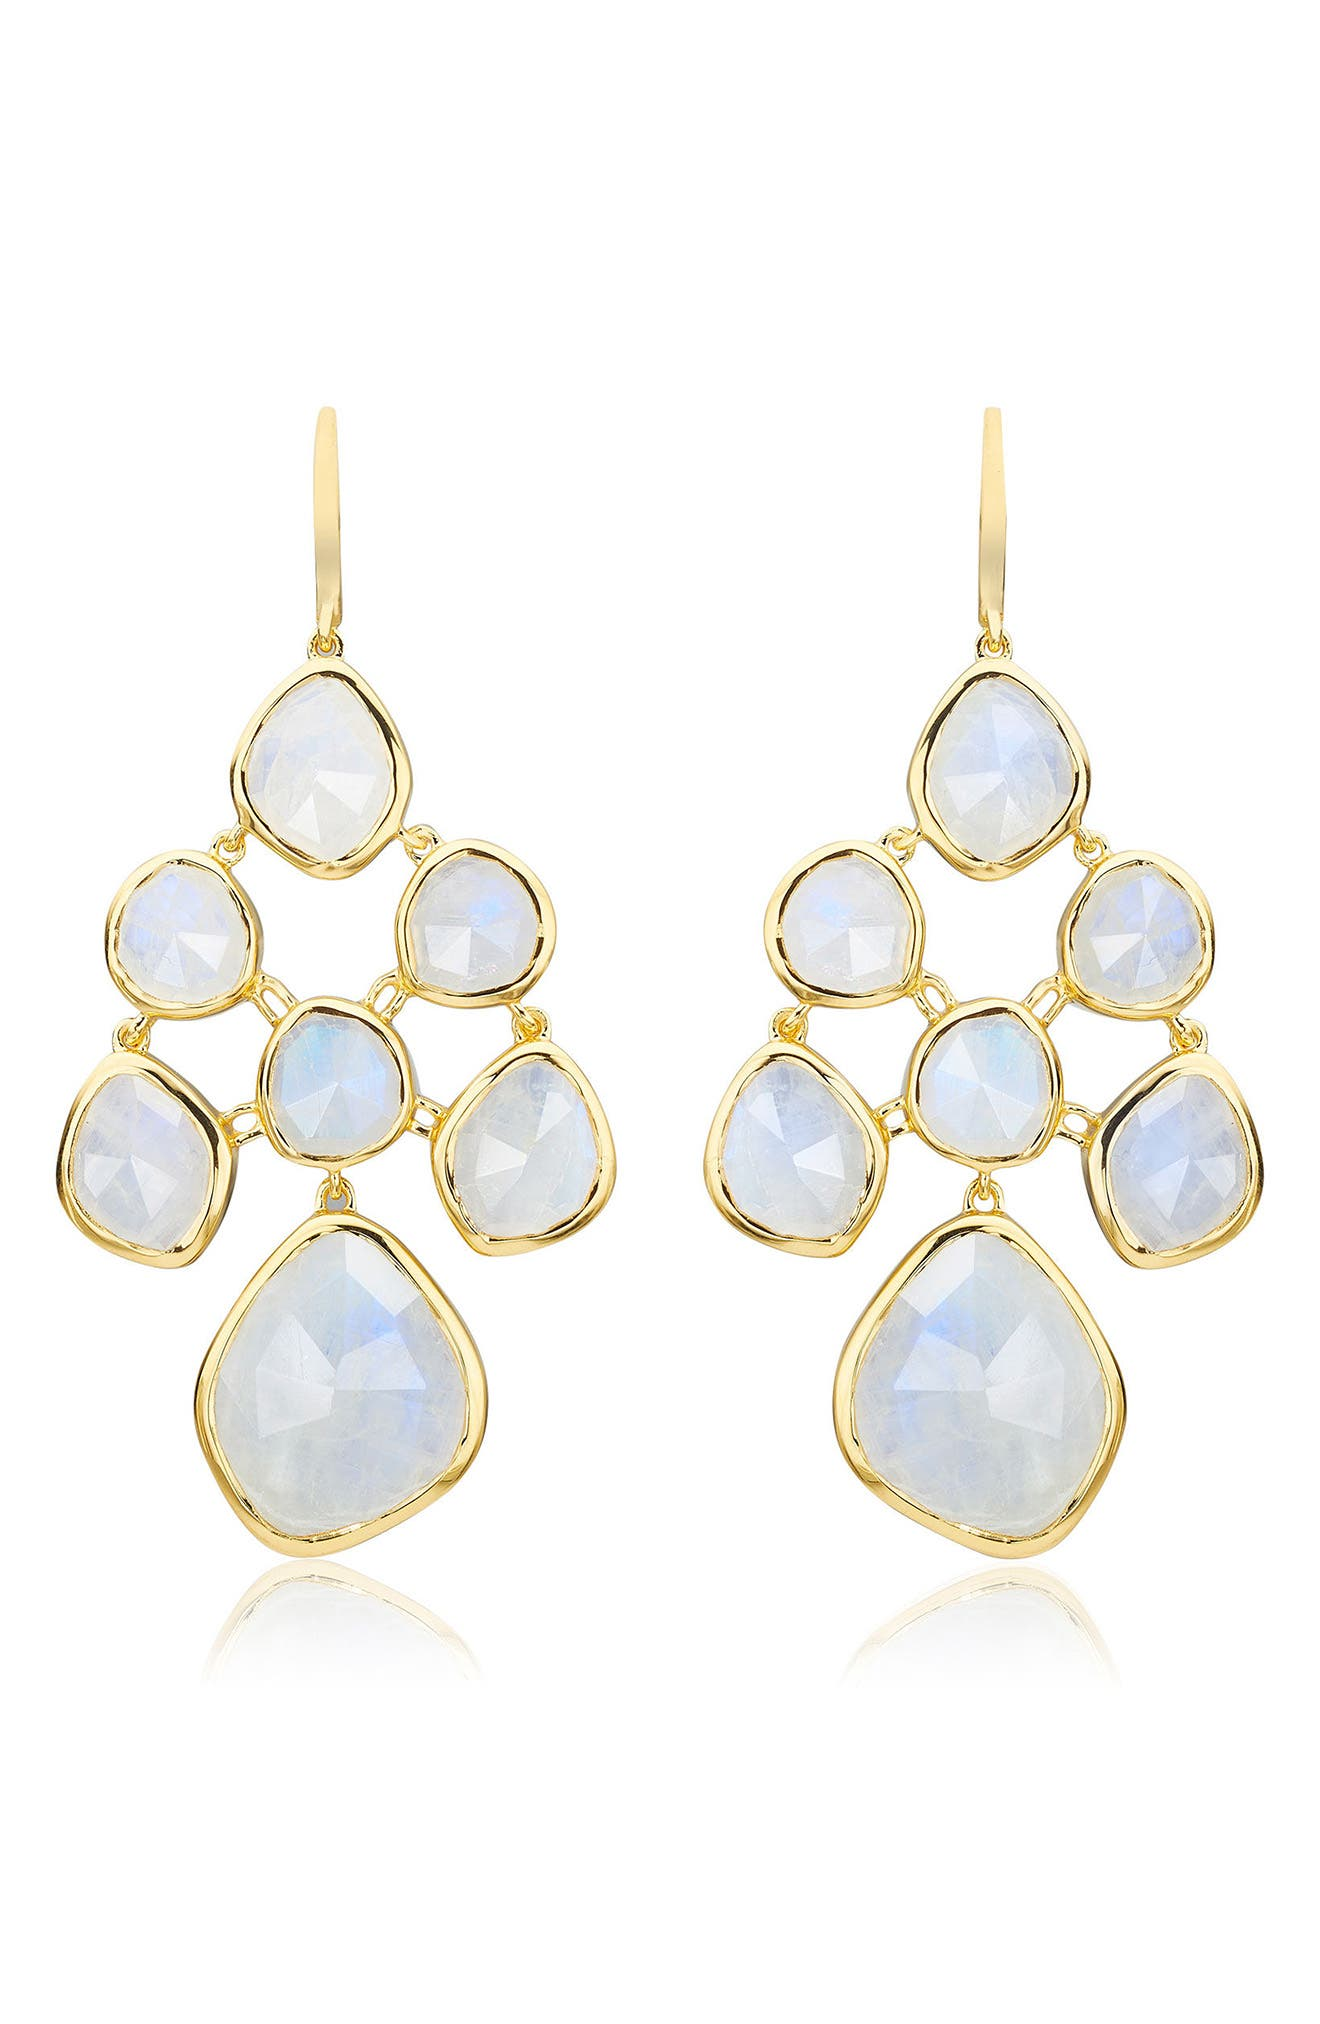 Siren Chandelier Earrings,                             Main thumbnail 1, color,                             YELLOW GOLD/ MOONSTONE